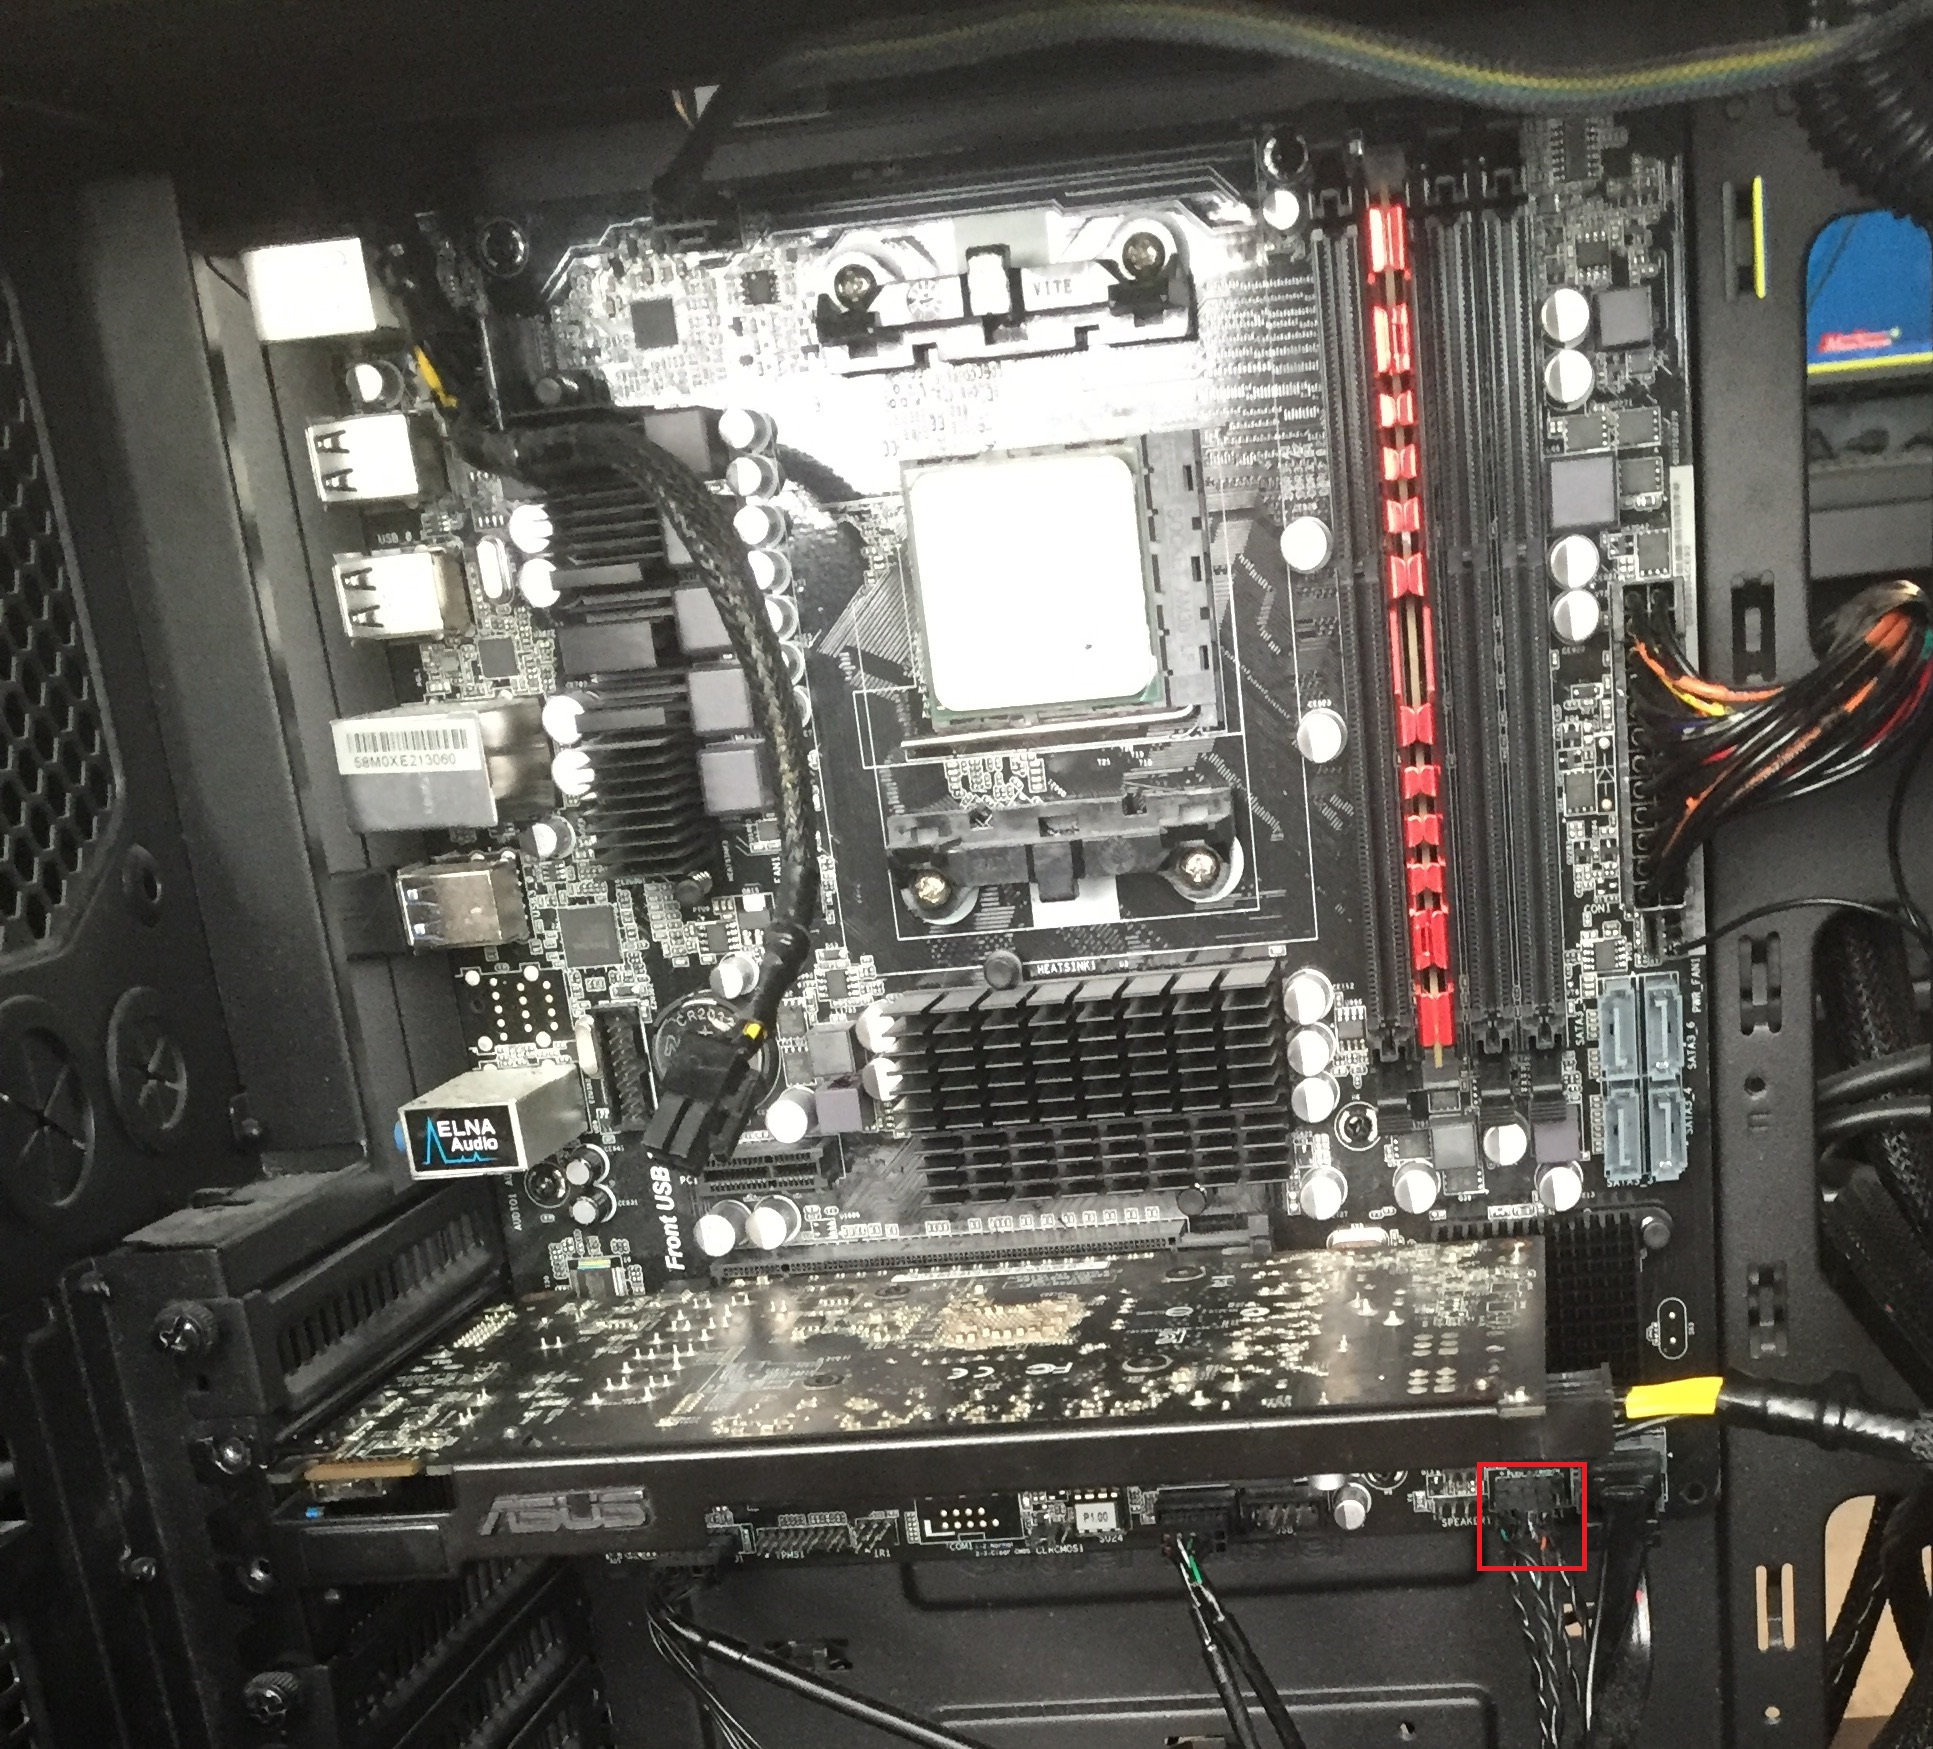 I just got my computer put together not turning on.